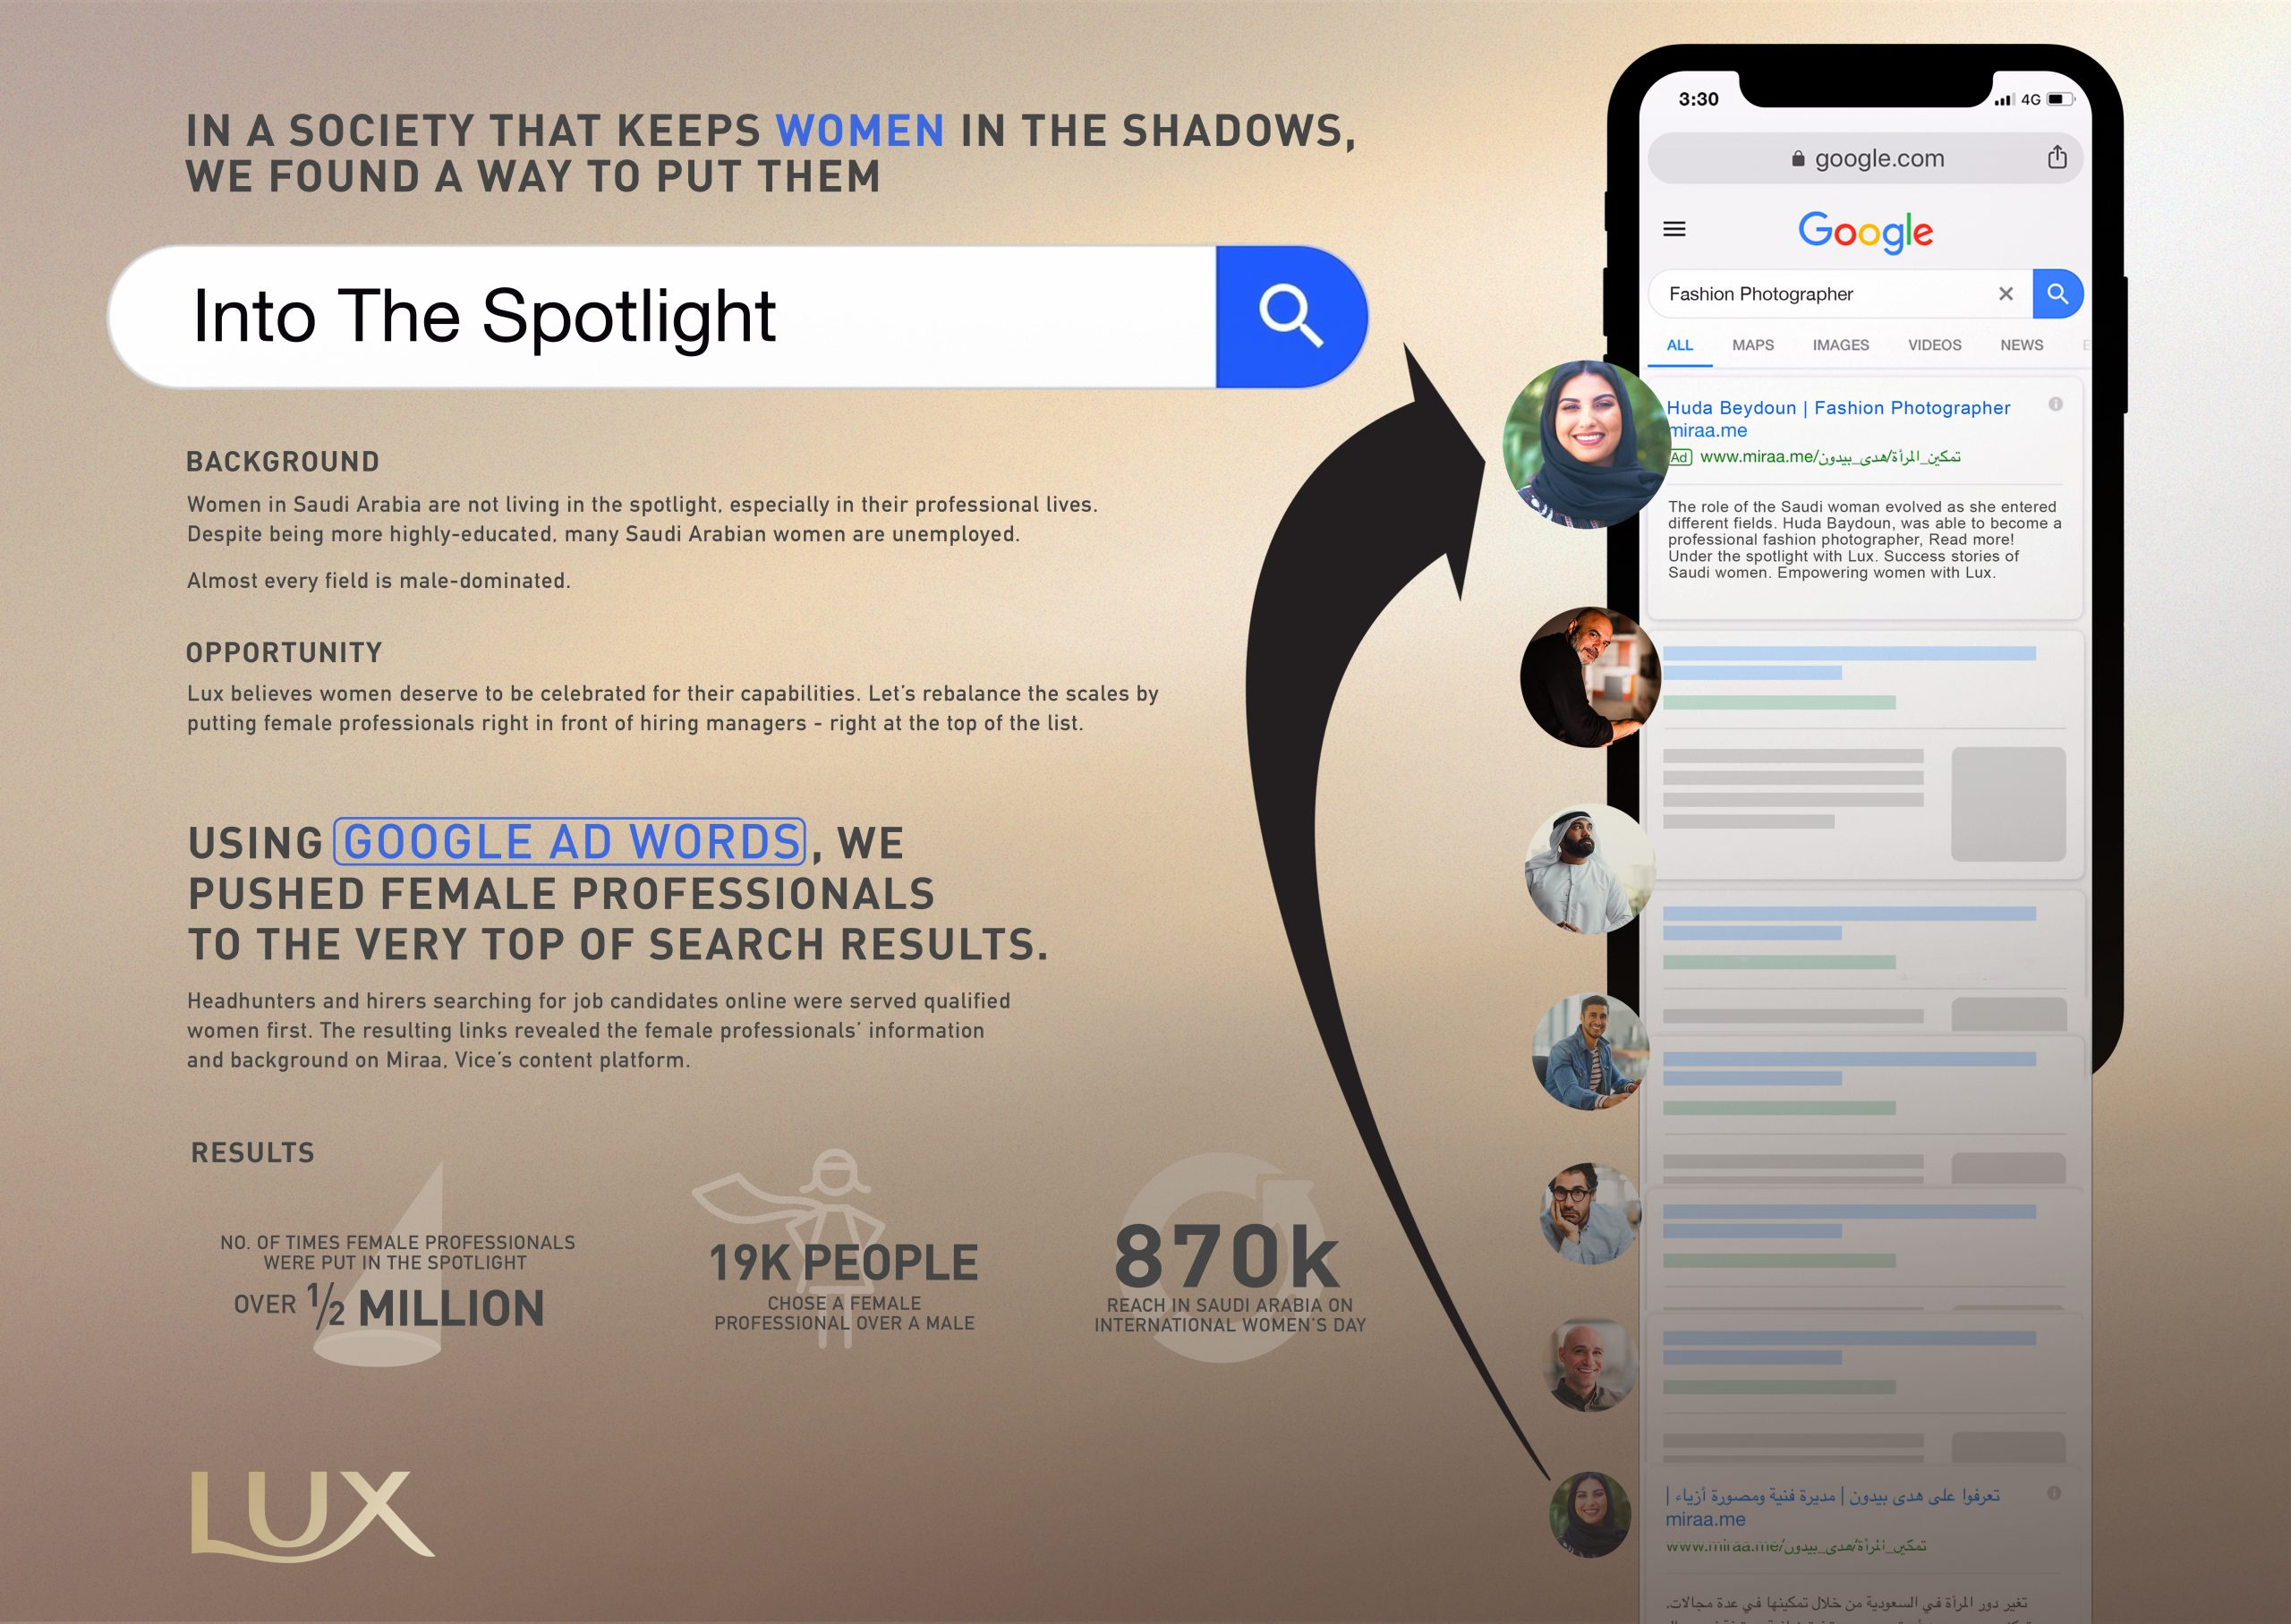 http://engsuikee.com/wp-content/uploads/2019/05/Lux-Purpose-Into-The-Spotlight-Google-Search-Words-scaled.jpg